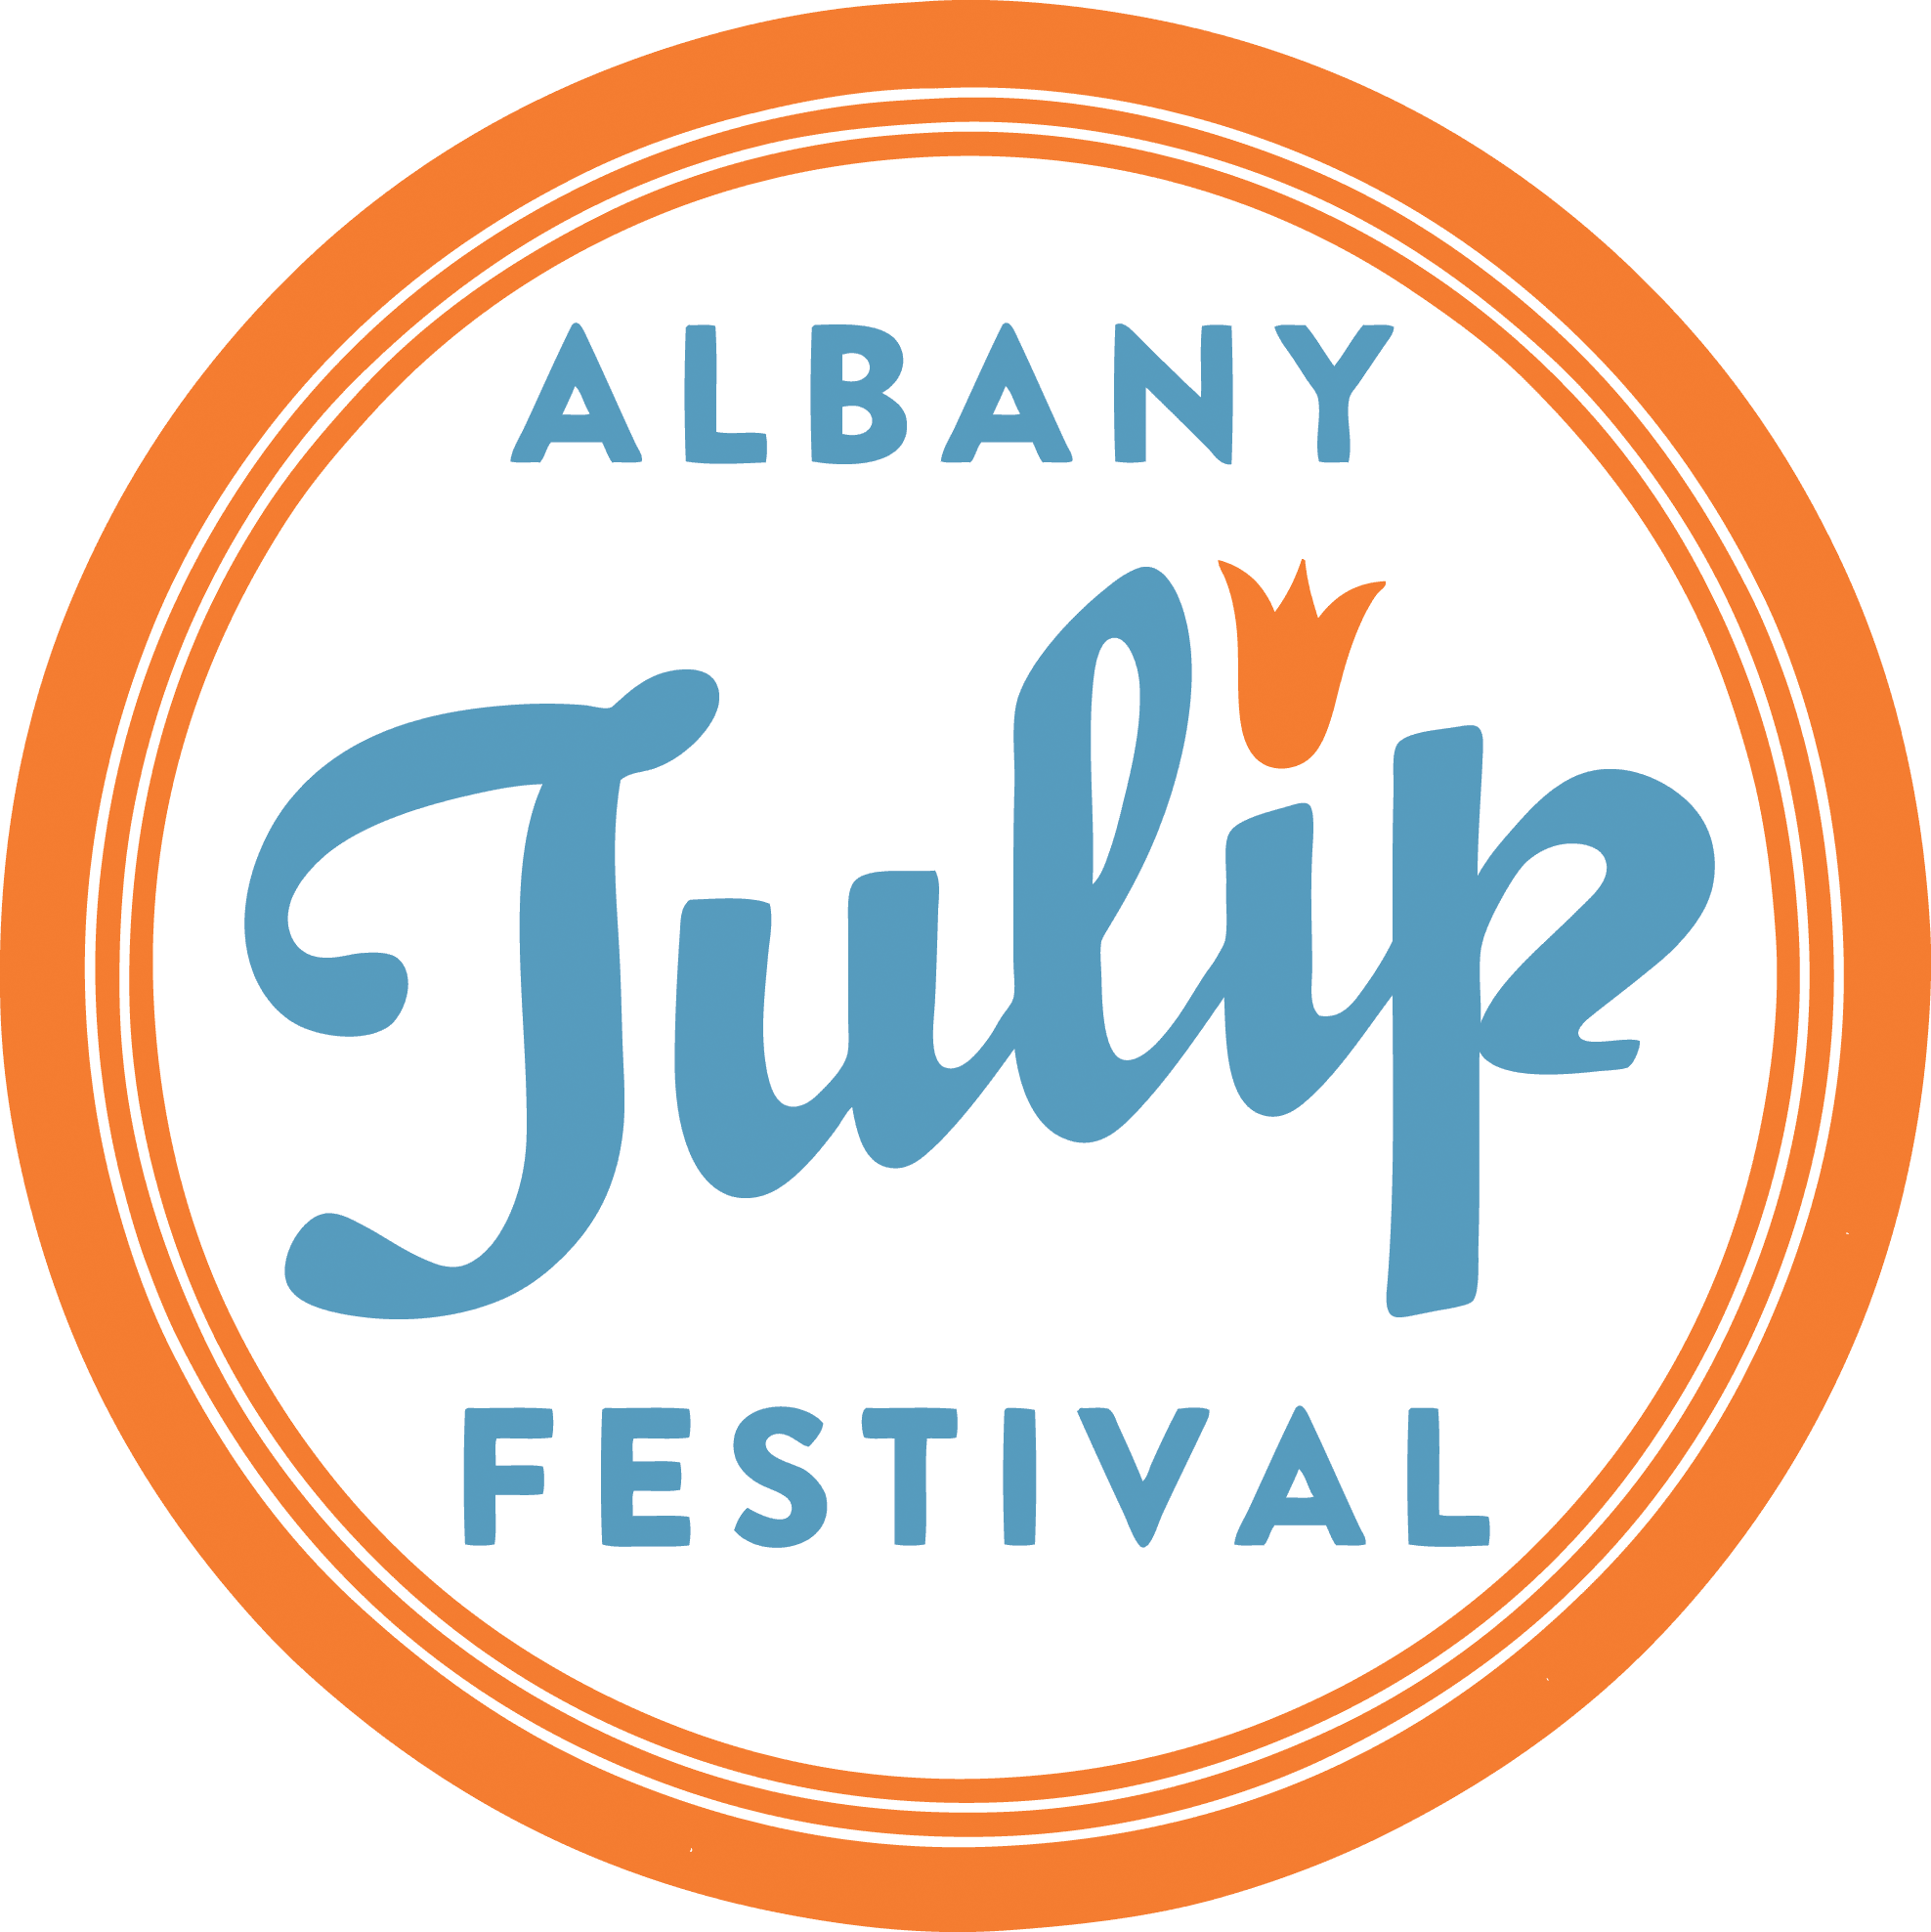 CDTA to provide free shuttle service for Albany Tulip Festival